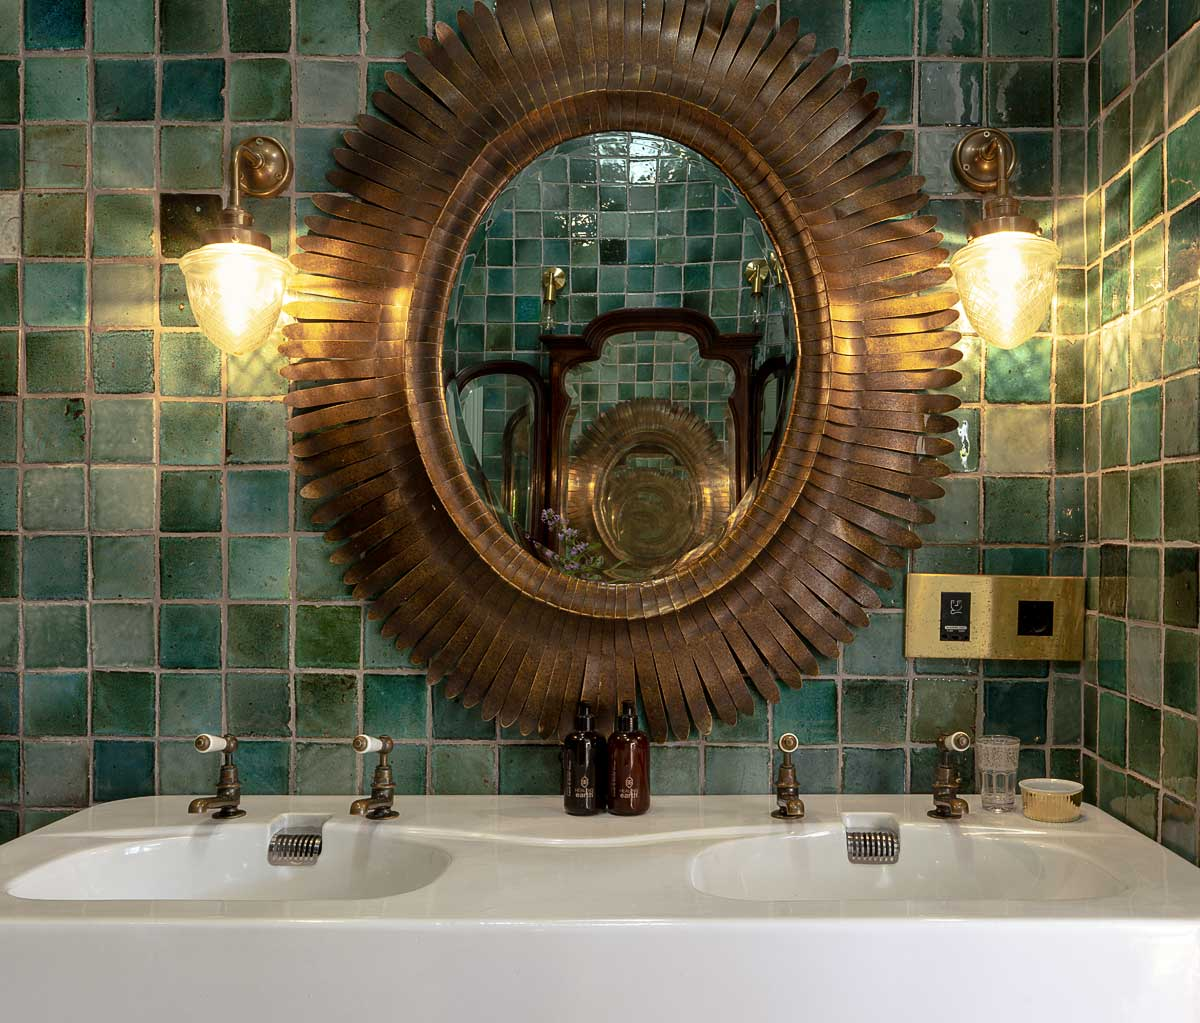 St James basin pillar taps with levers in an aged brass finish at Akademie Street Boutique Hotel by Victorian Bathrooms